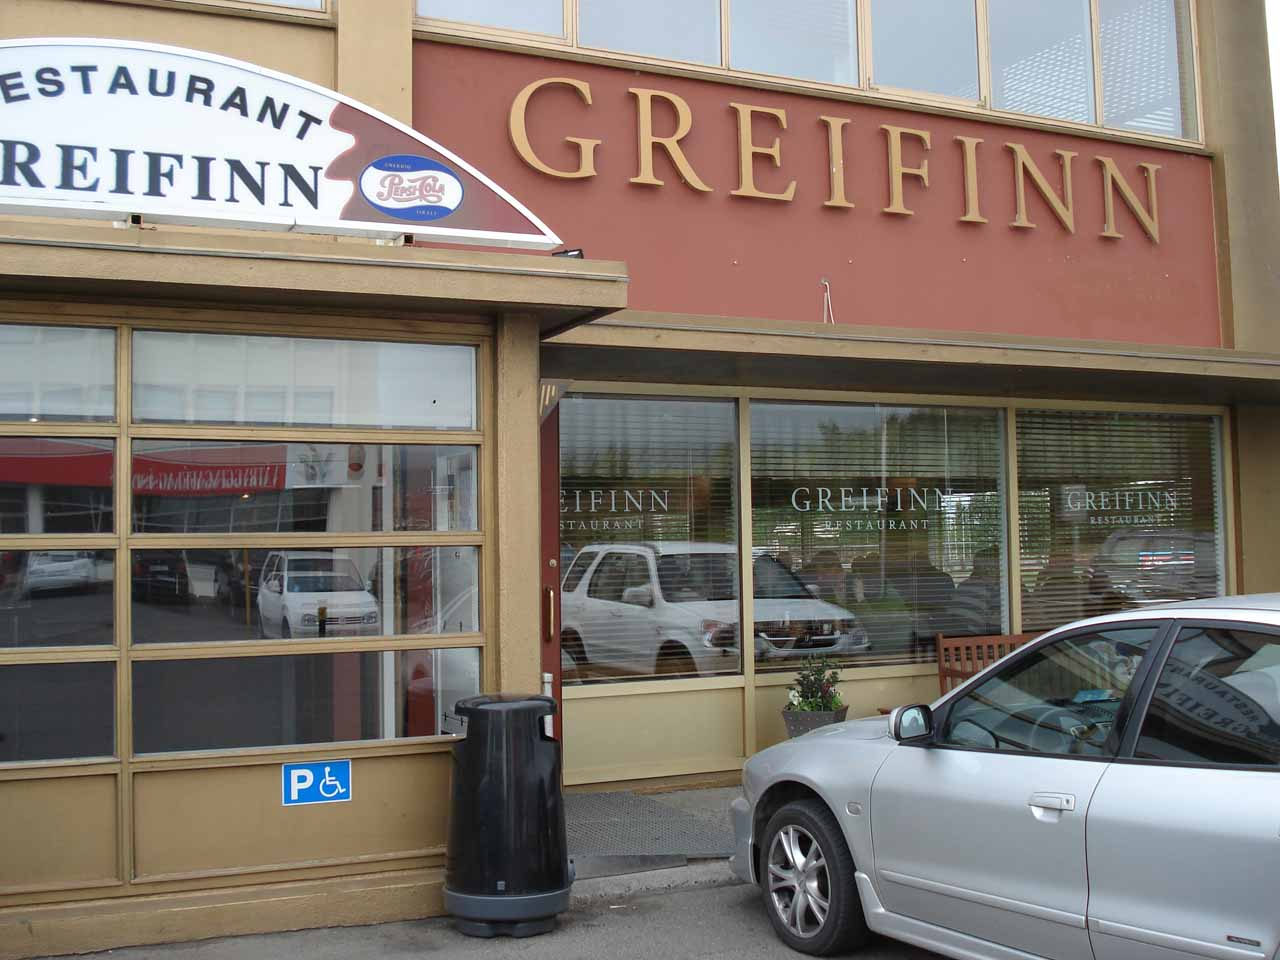 The restaurant Greifinn